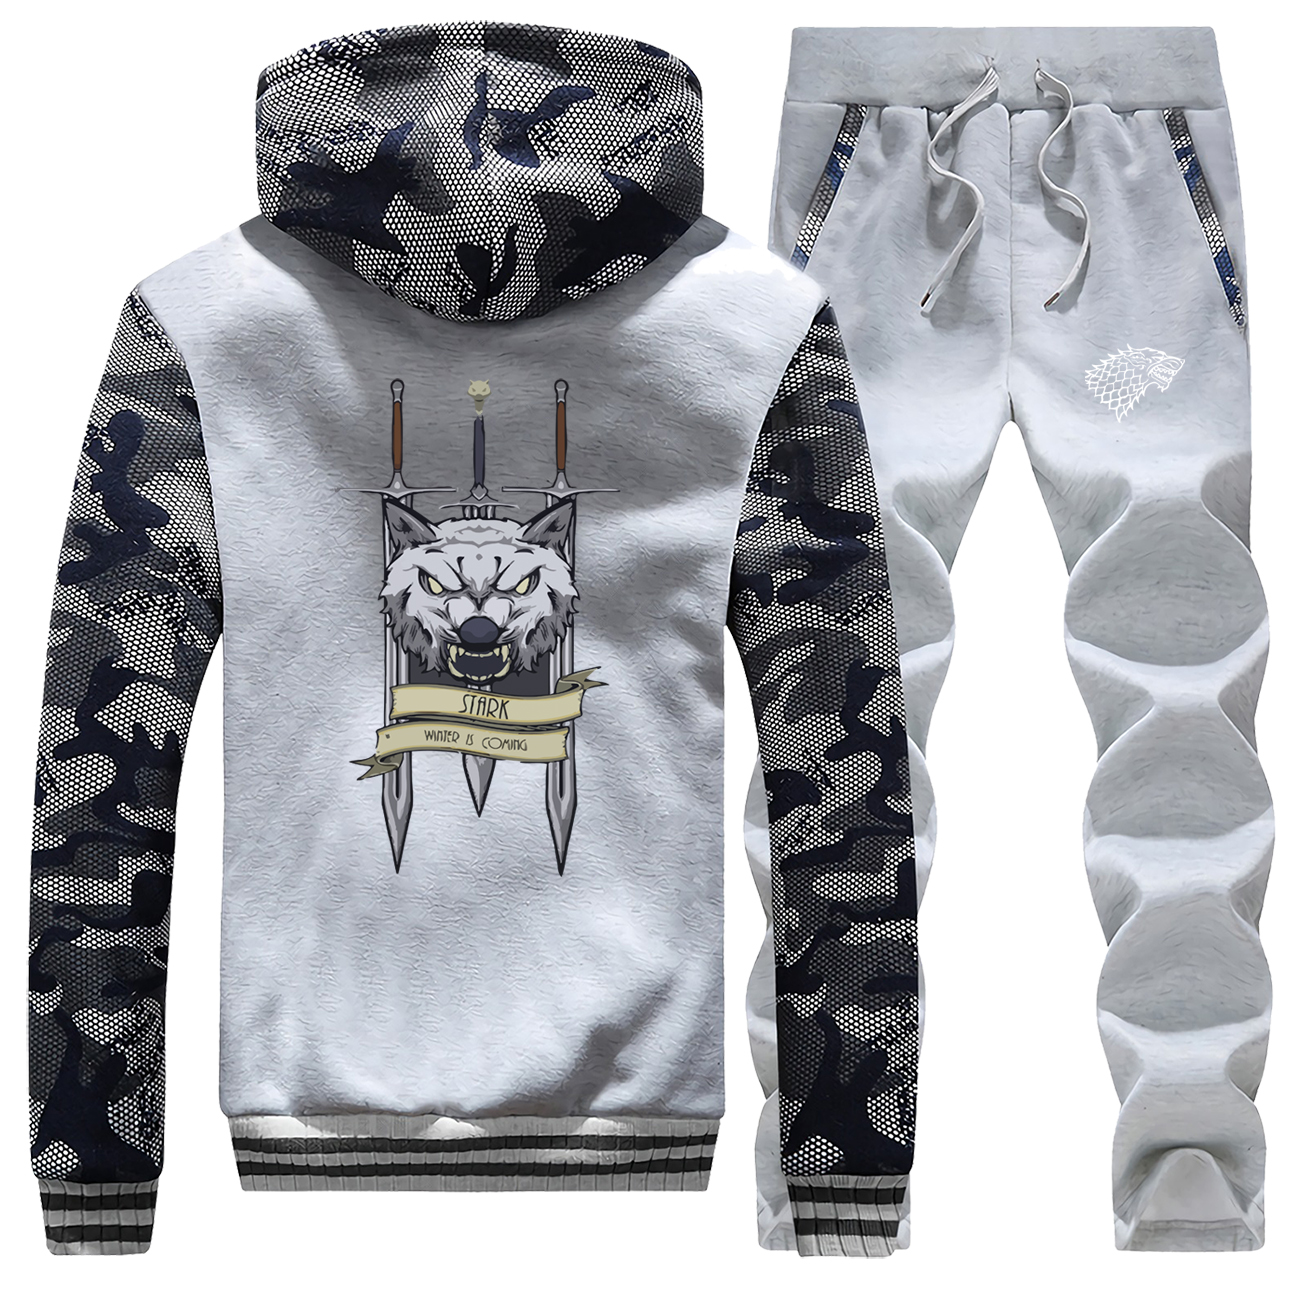 Winter Hot Sale Game Of Thrones Sportswear Mens Camouflage Hoodies Warm Jackets Suit House Of Stark Fashion+2 Piece Set Pants